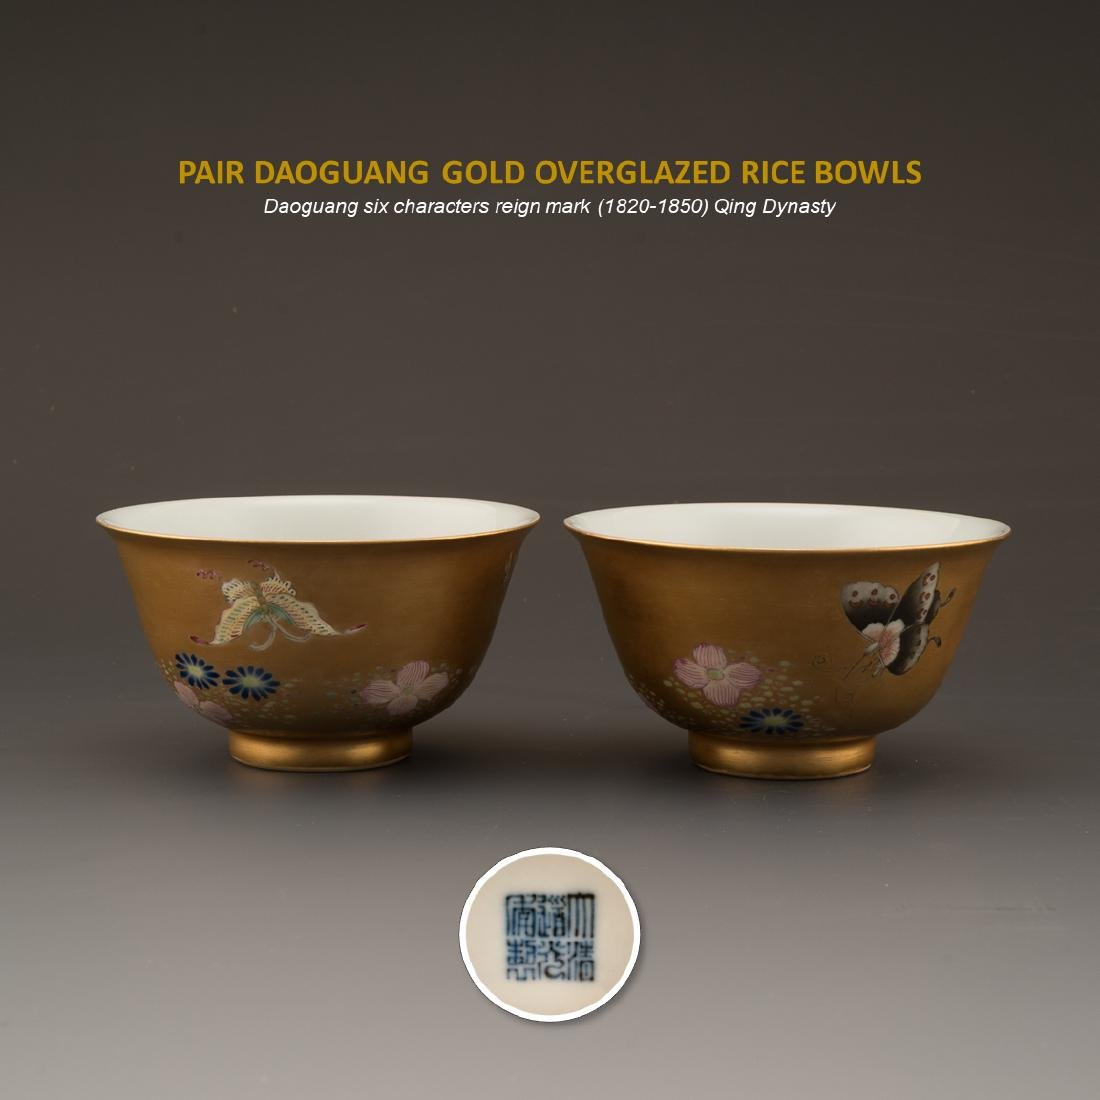 PAIR DAOGUANG GOLD OVERGLAZED RICE BOWLS